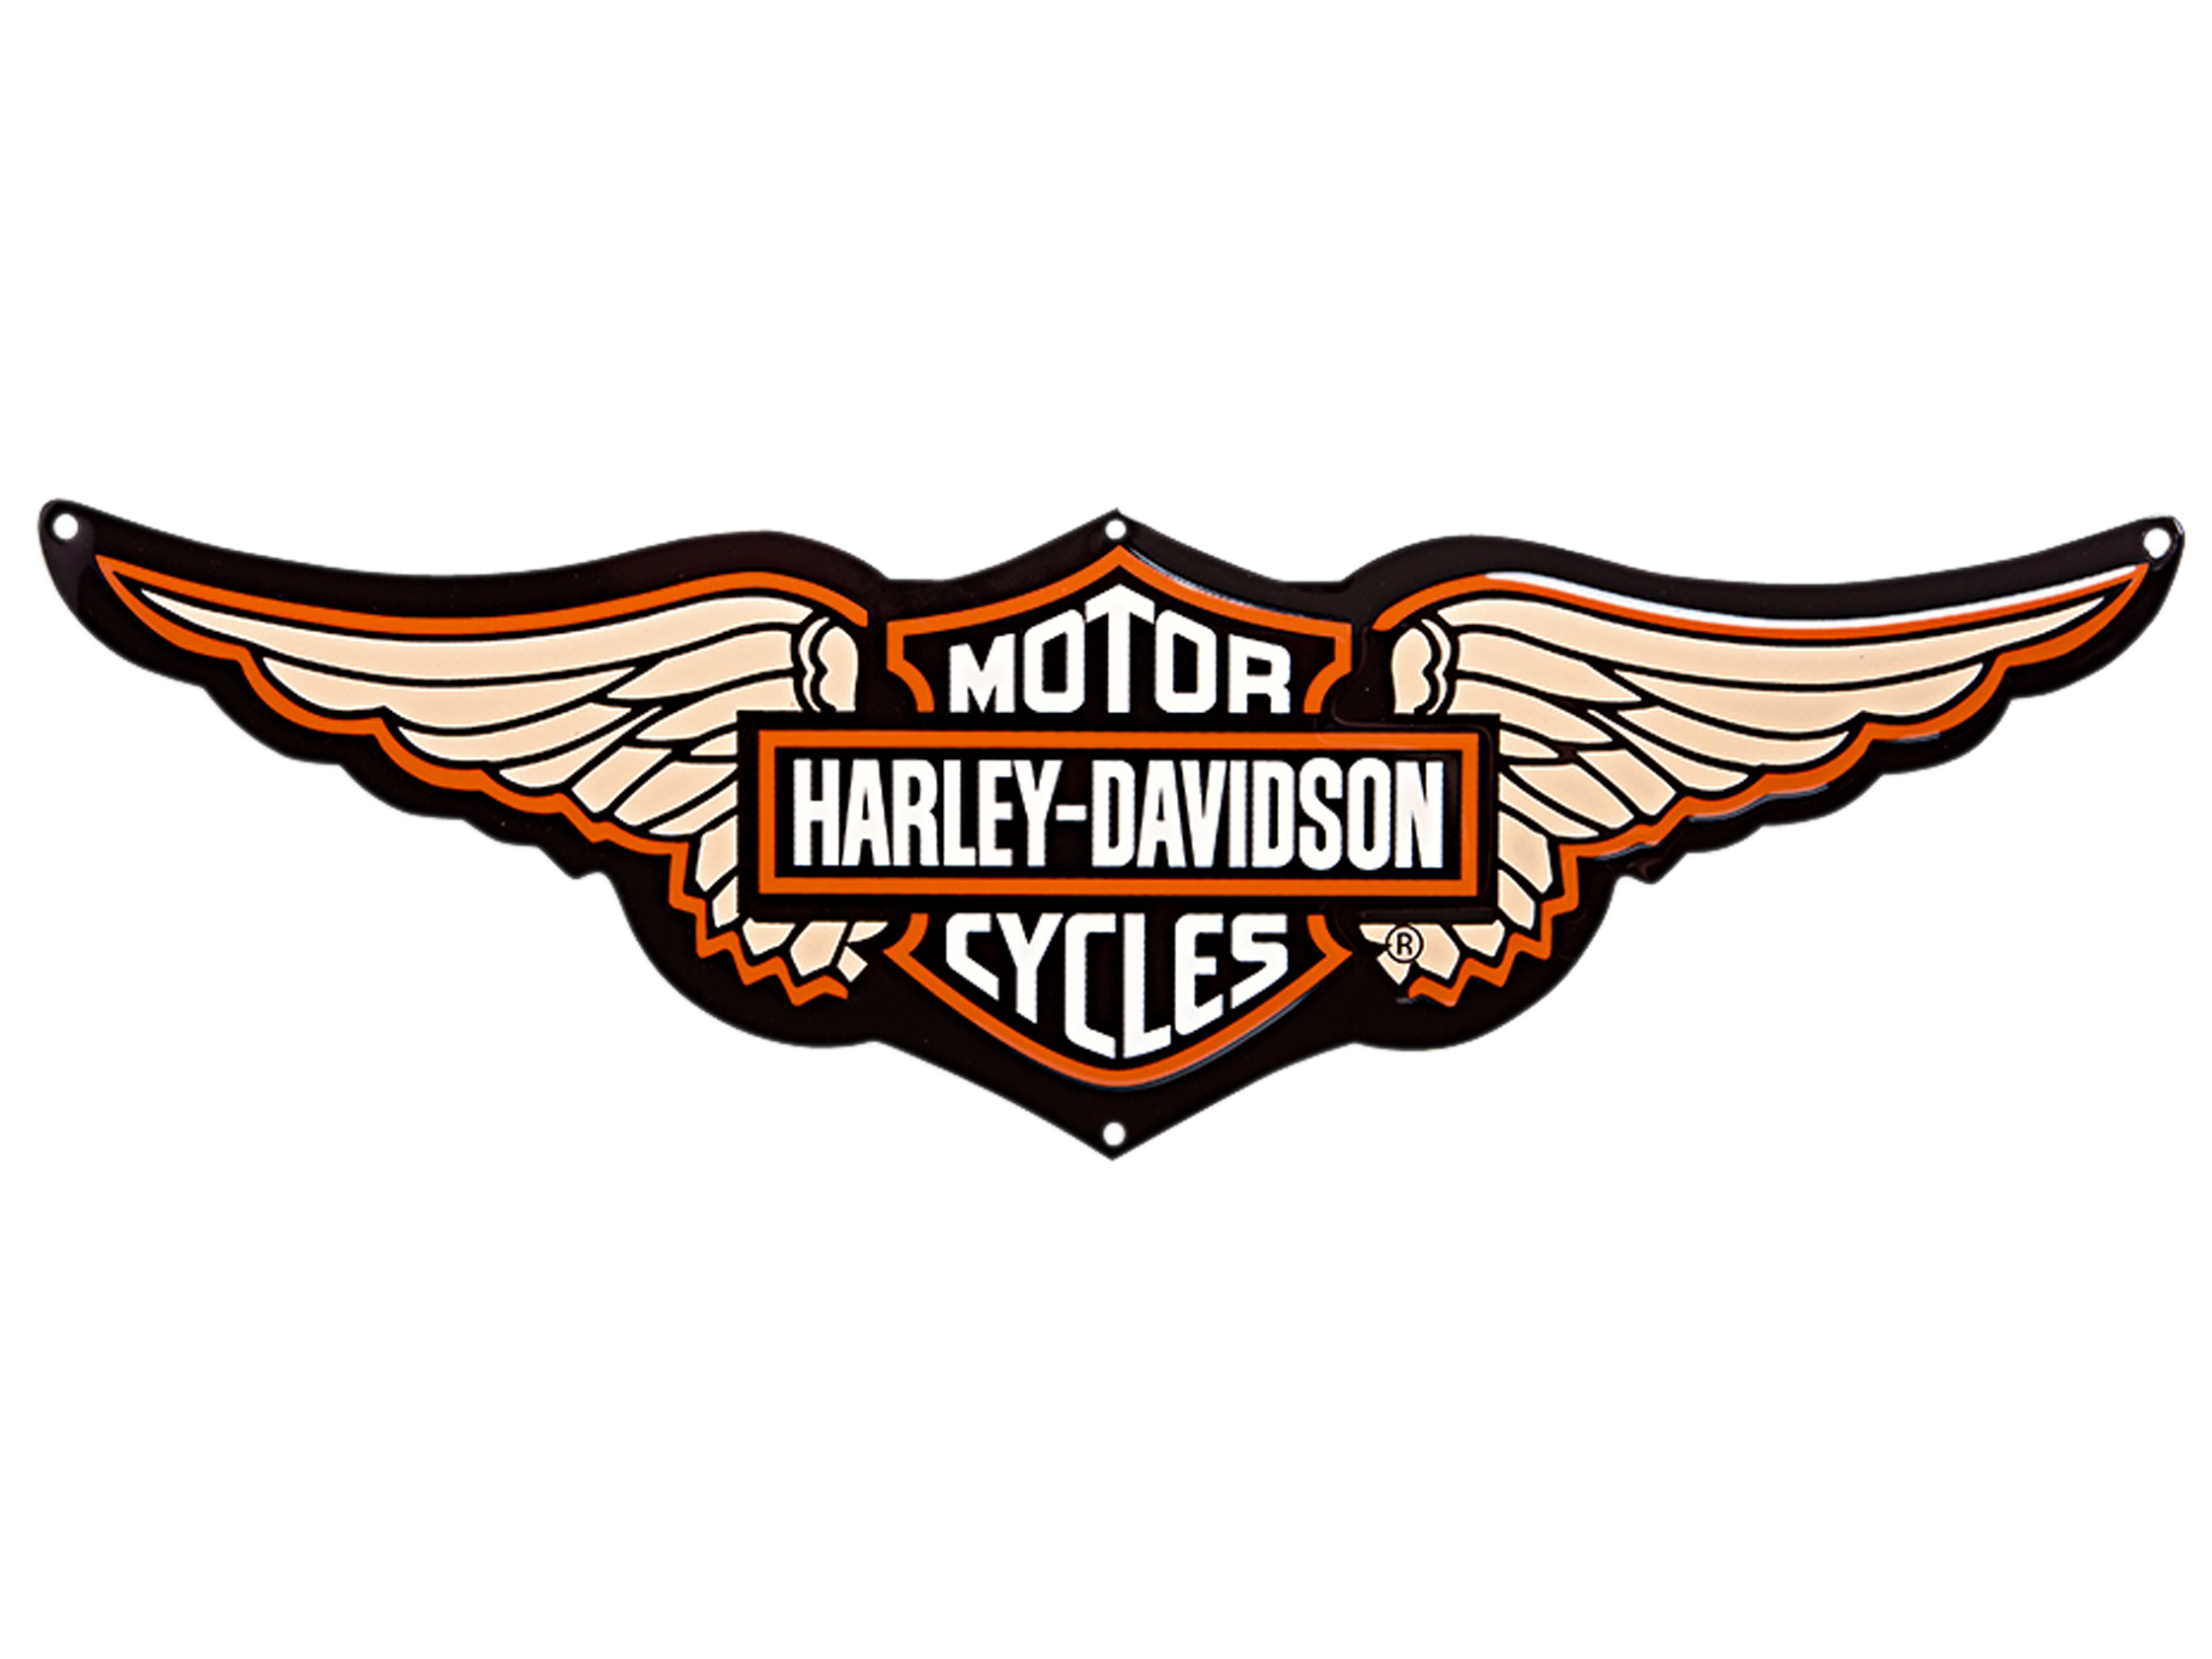 Harley davidson wings clipart jpg black and white stock Free Harley Davidson Logos Free, Download Free Clip Art, Free Clip ... jpg black and white stock